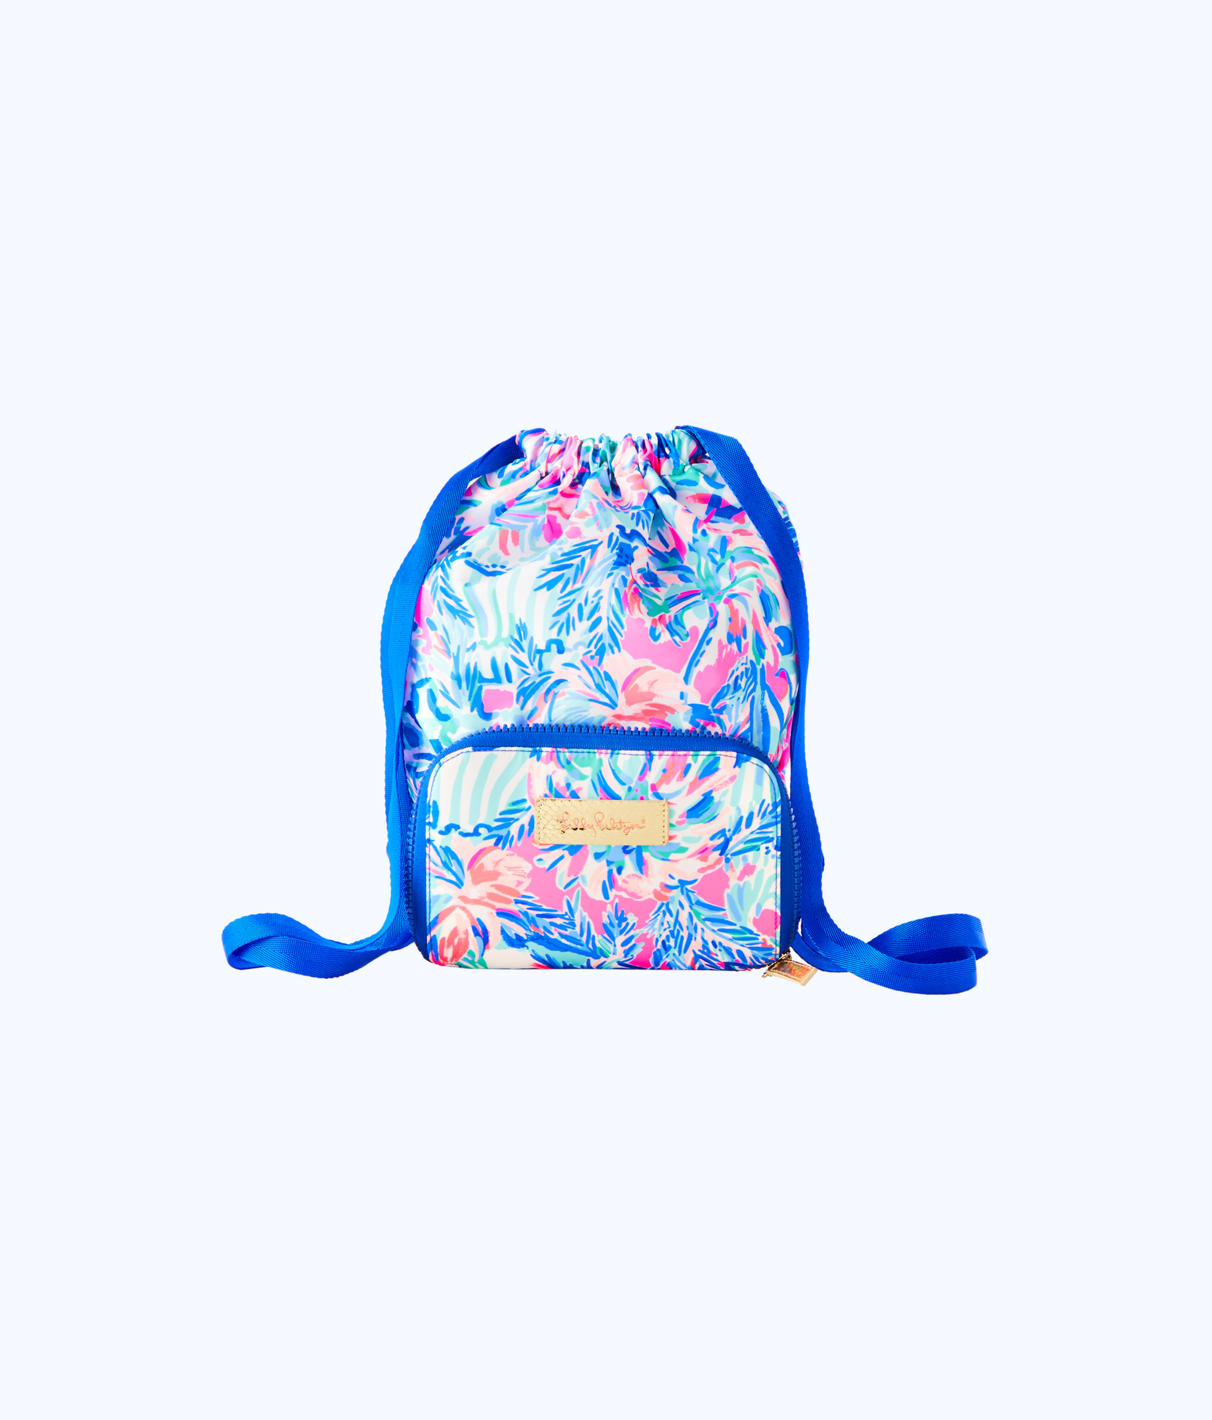 Lilly Pulitzer Lilly Pulitzer Packable Beach Pack Bag